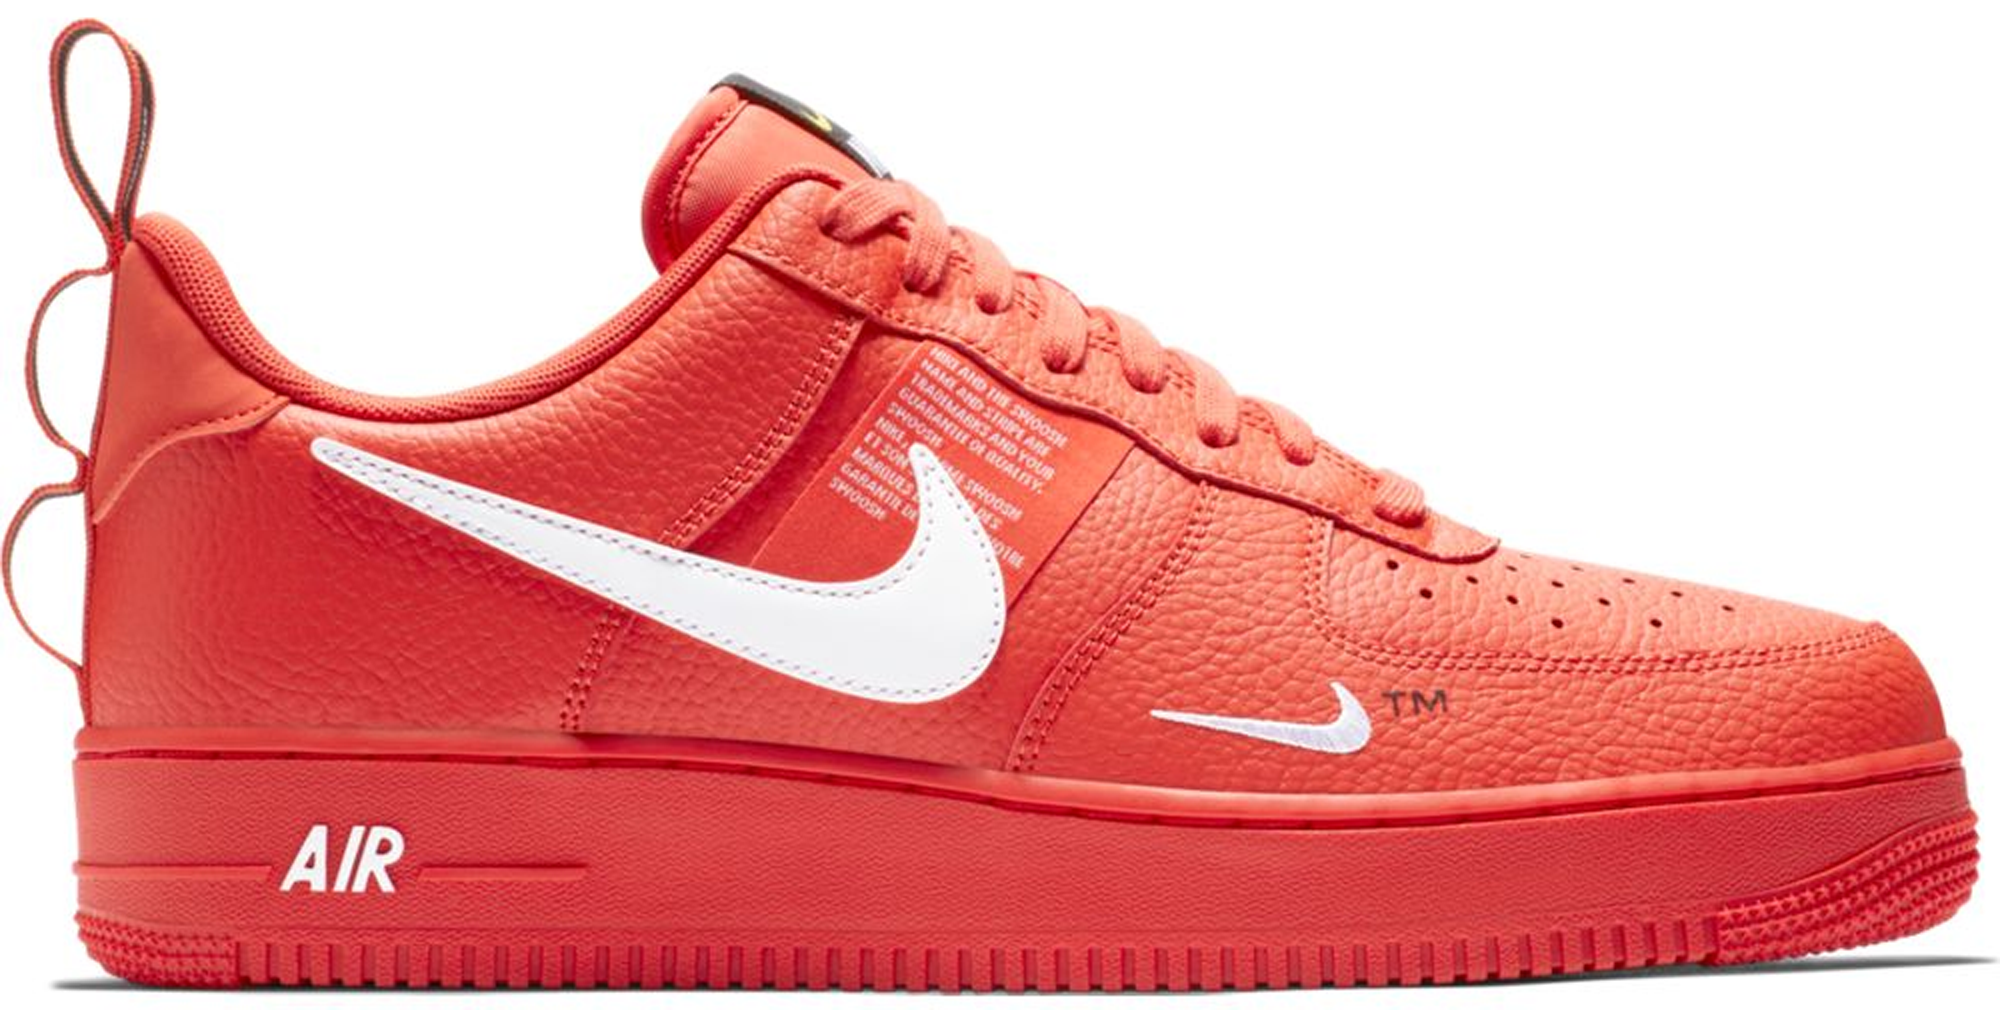 Nike Air Force 1 Low Utility Team